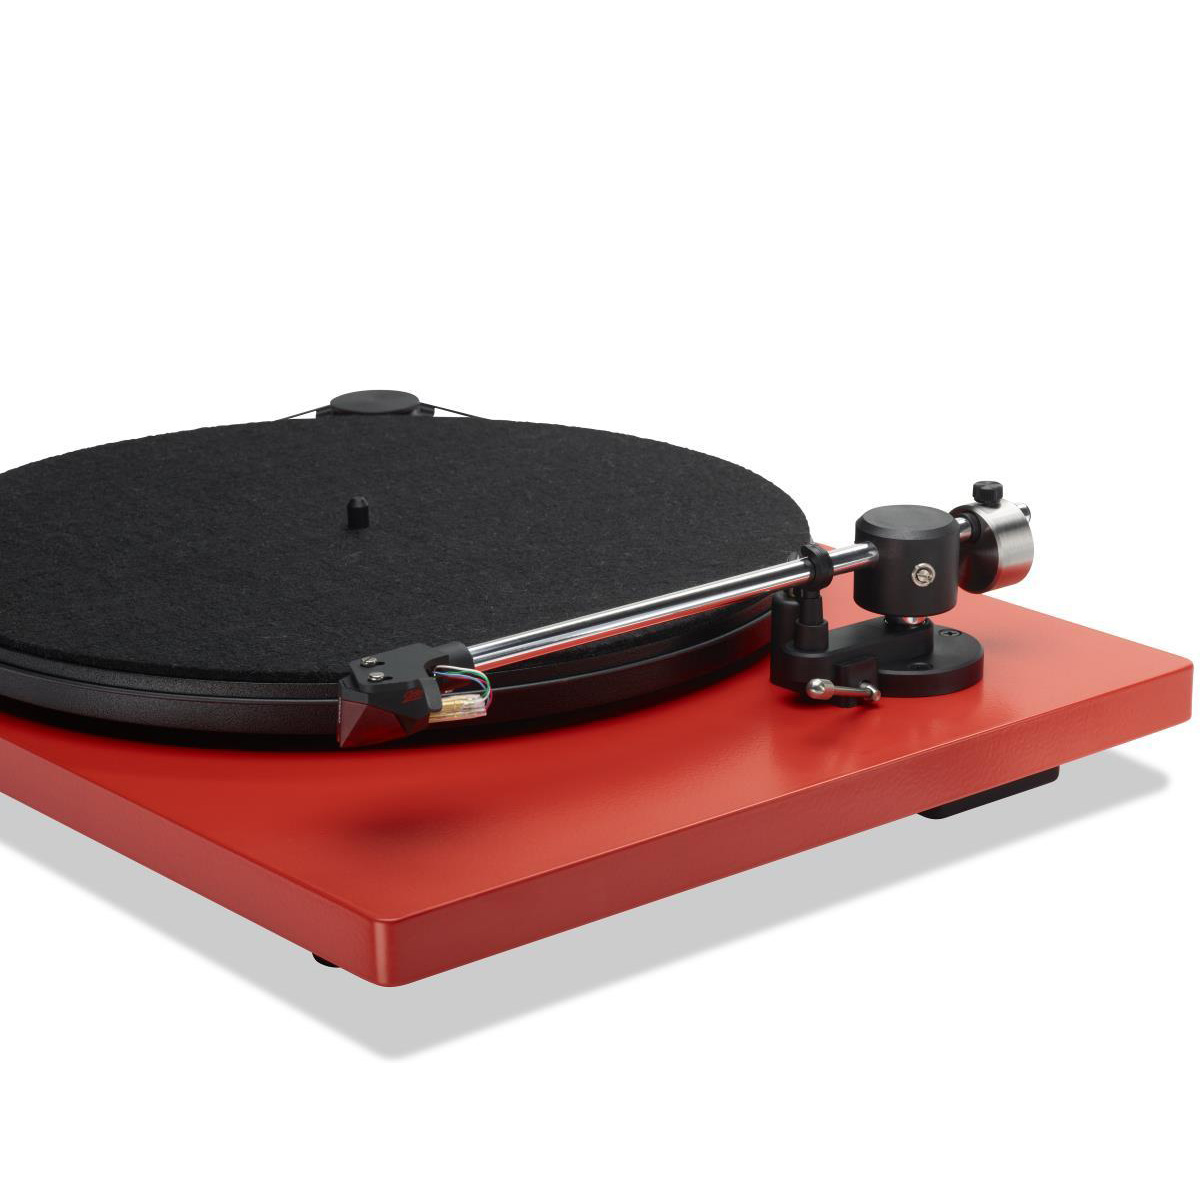 U-Turn-Audio-Orbit-Plus-Turntable thumbnail 28